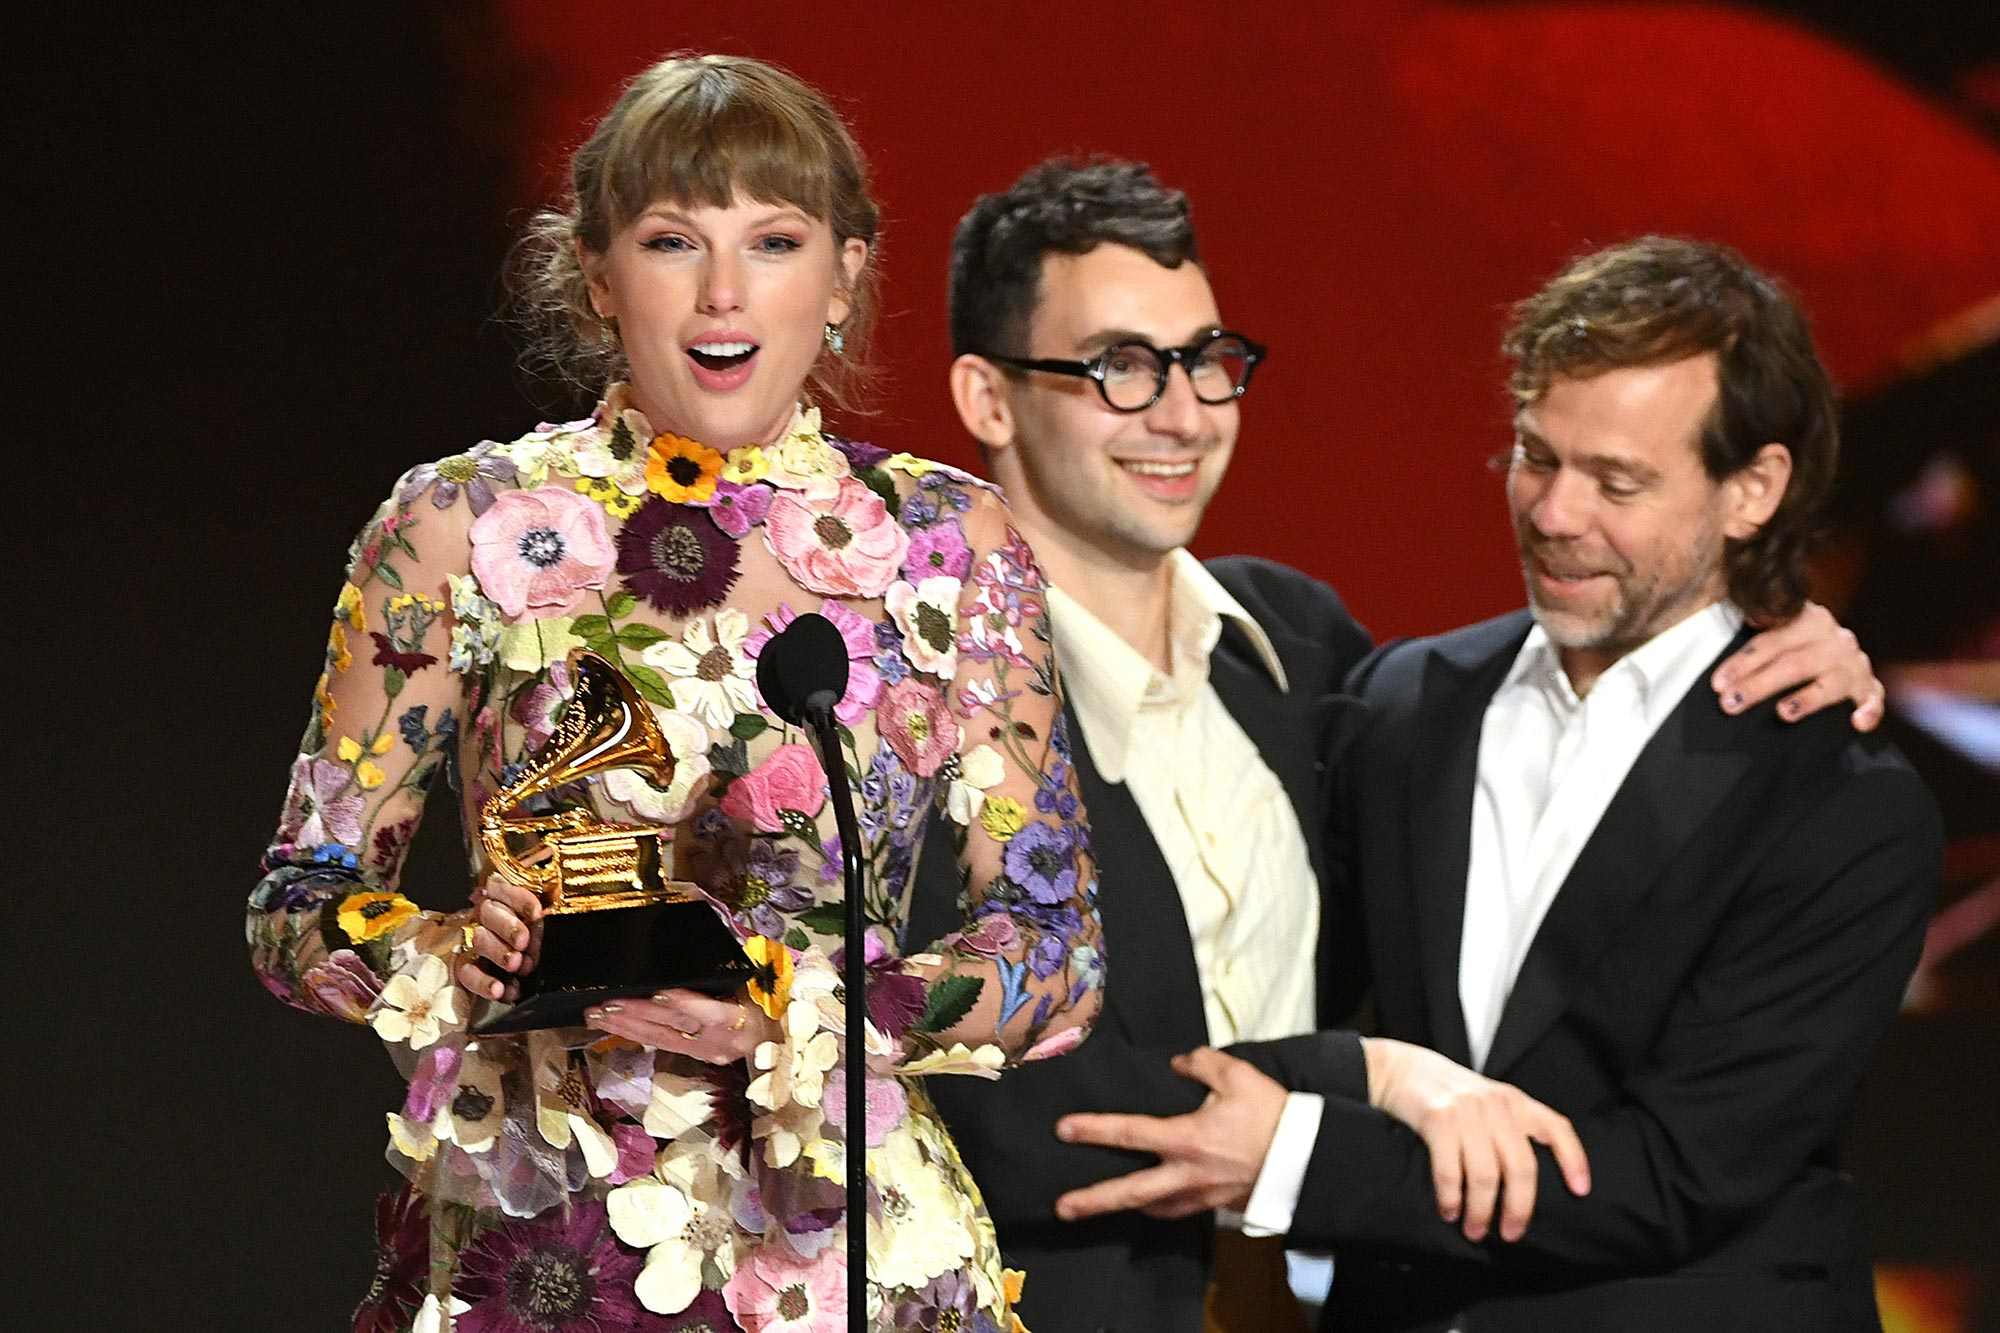 Taylor Swift, Jack Antonoff, and Aaron Dessner accept the Album of the Year